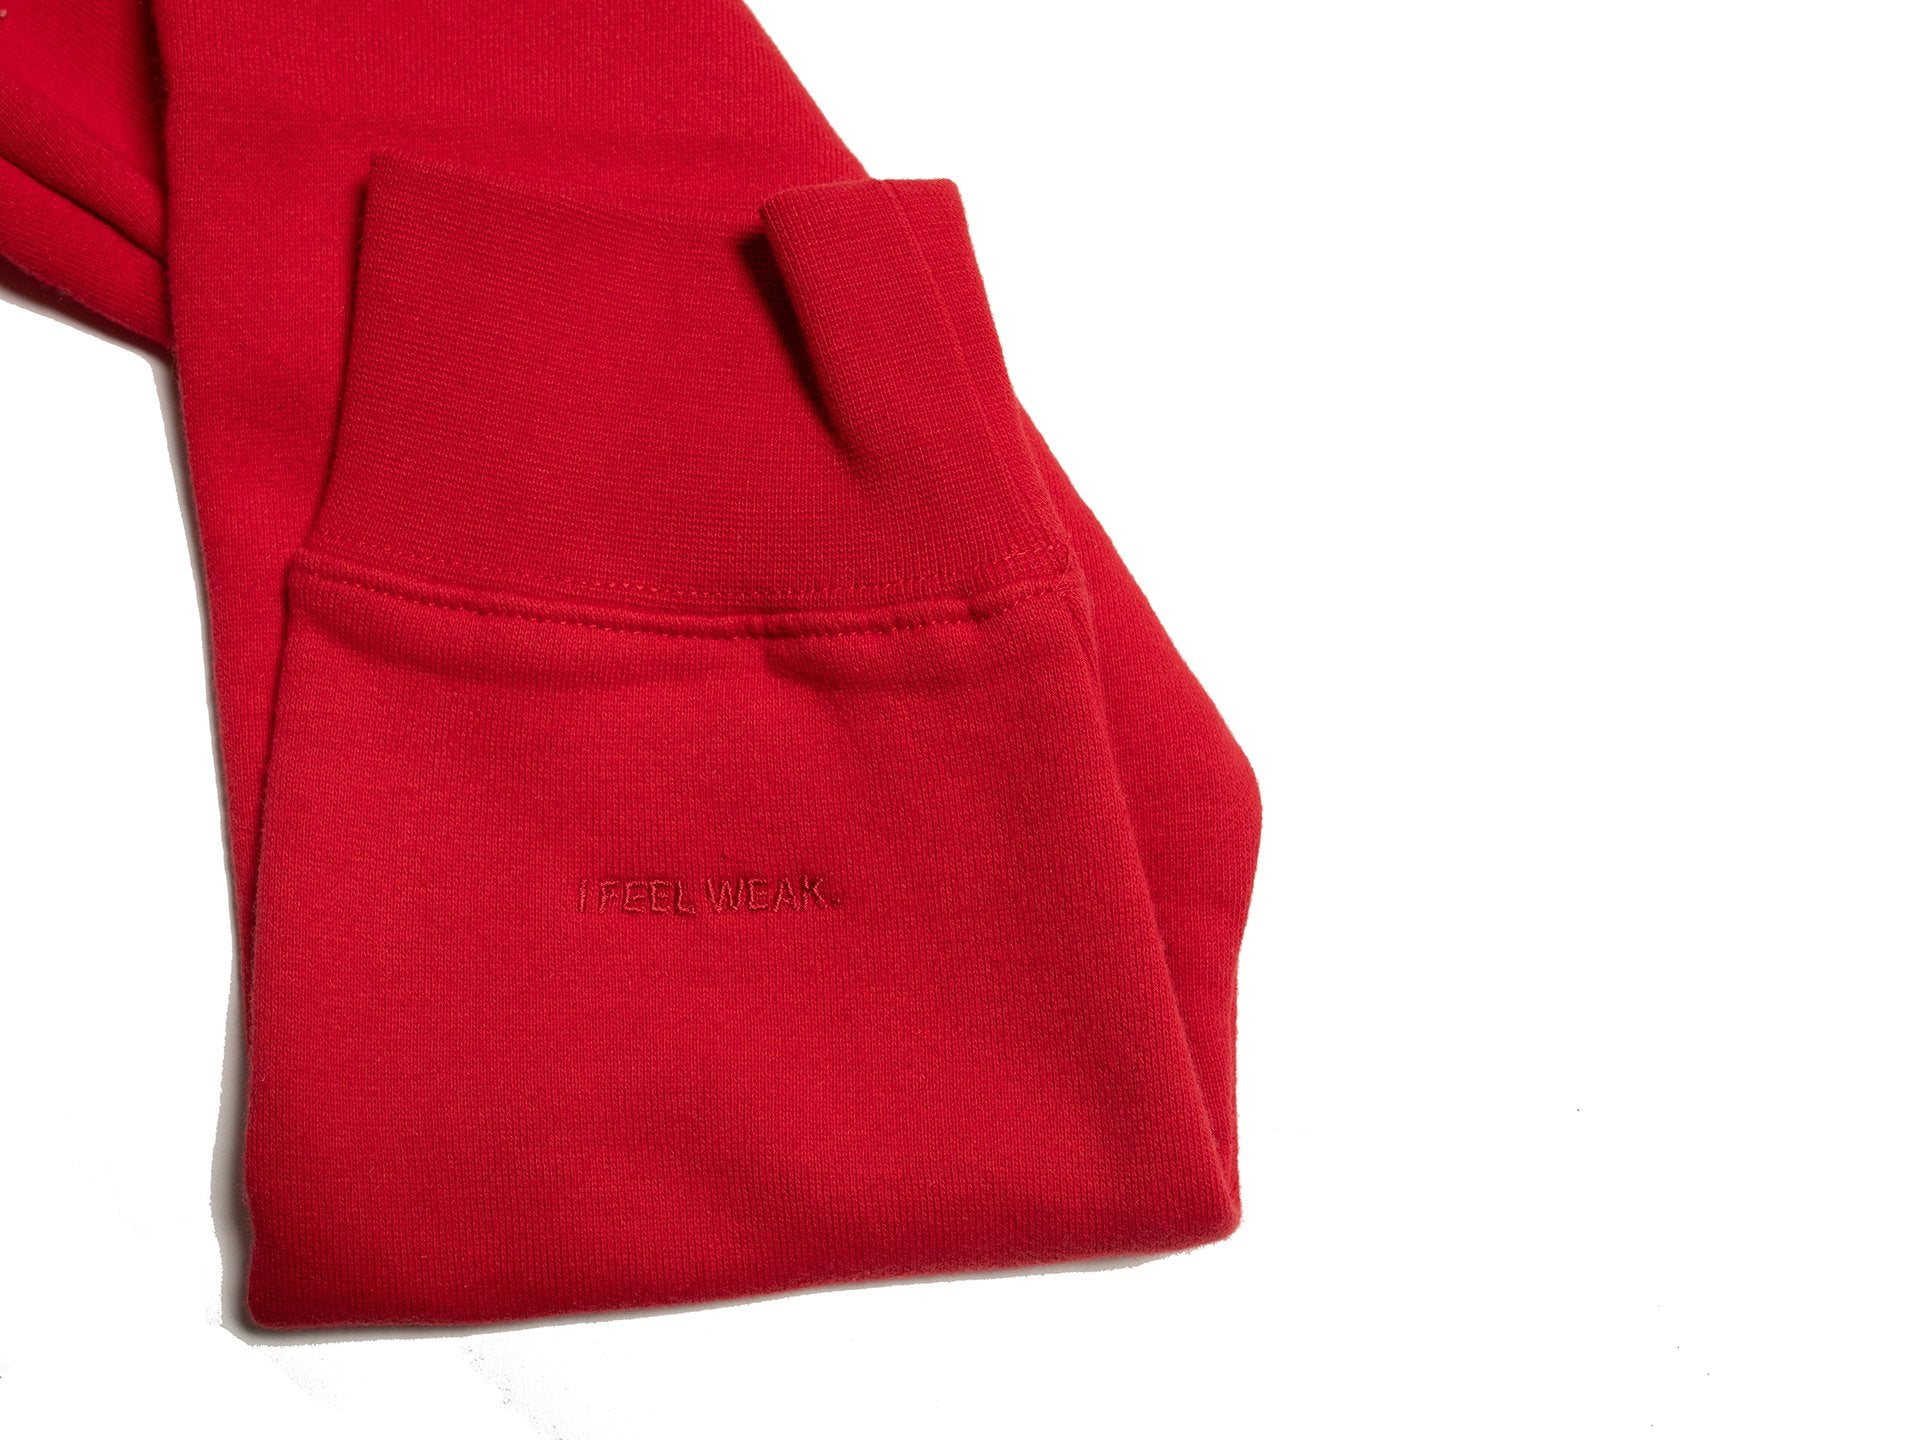 c0a7d48b33d Hoodie red load image into gallery viewer you matter jpg 1920x1440 Matter  hoodie sleeve